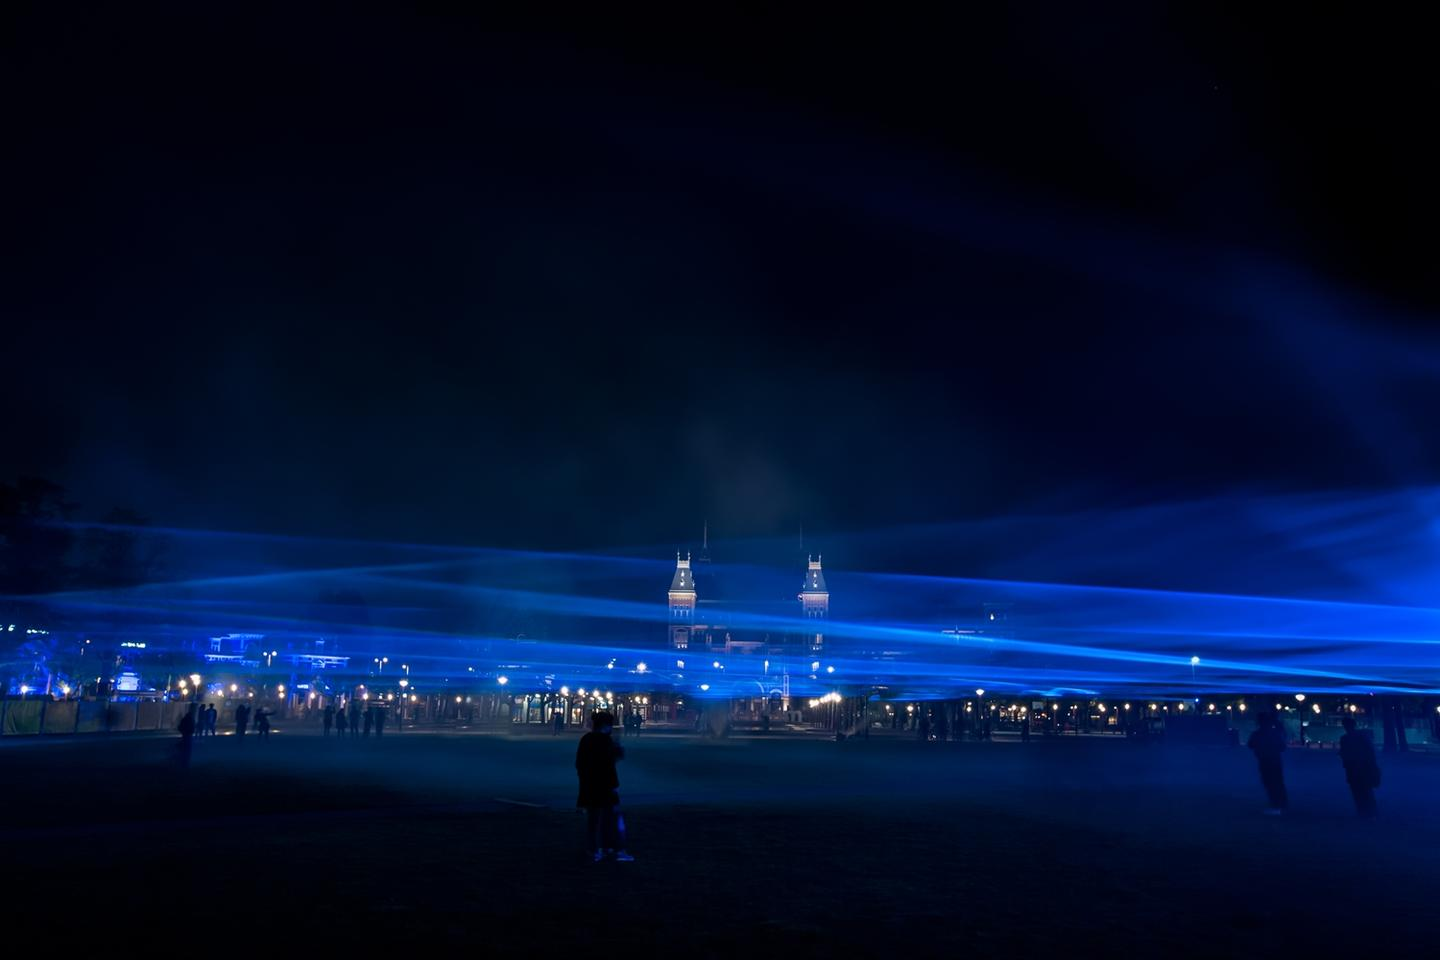 Studio Roosegaarde's Waterlicht installation has been on display in Amsterdam's Museumplein square